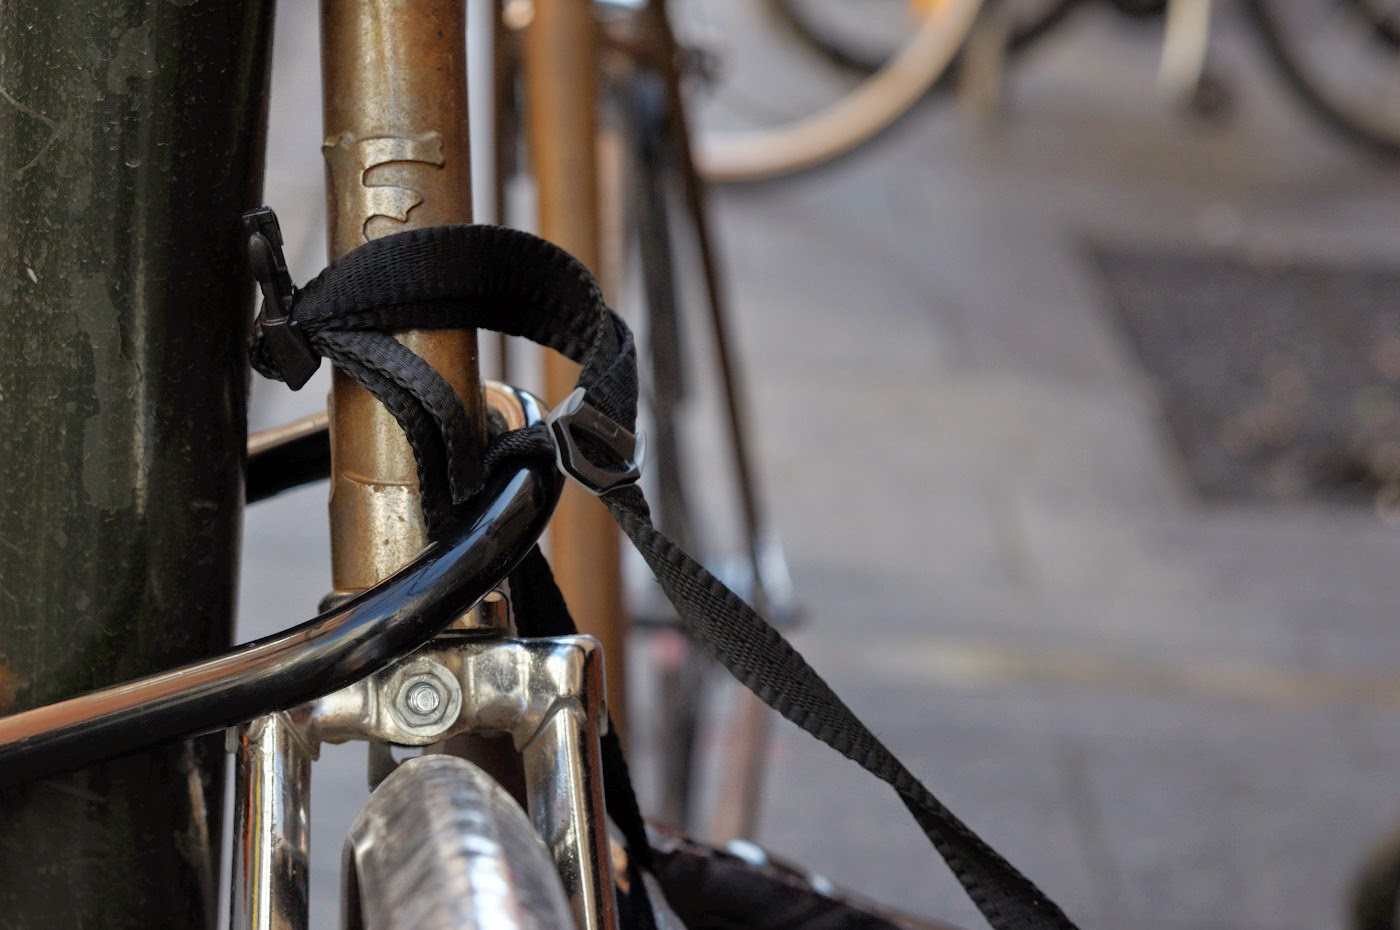 dia-compe, soma, brooks, fender, tim macauley, the biketorialist, vintage, frame, bespoke, custom